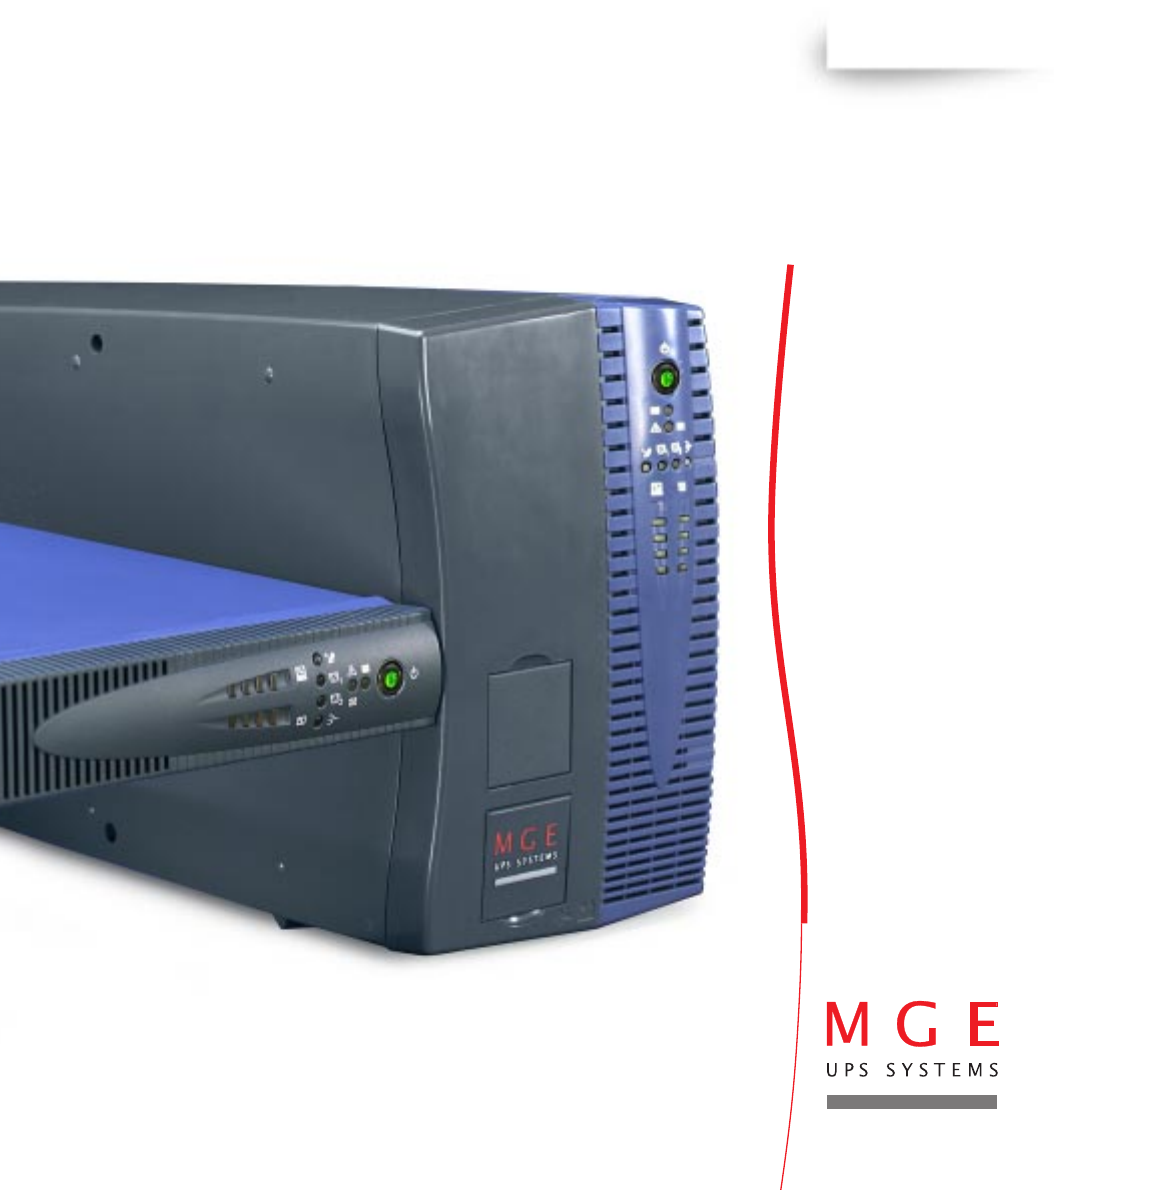 Download MGE UPS Systems Power Supply 1500 RT2U manual and ...